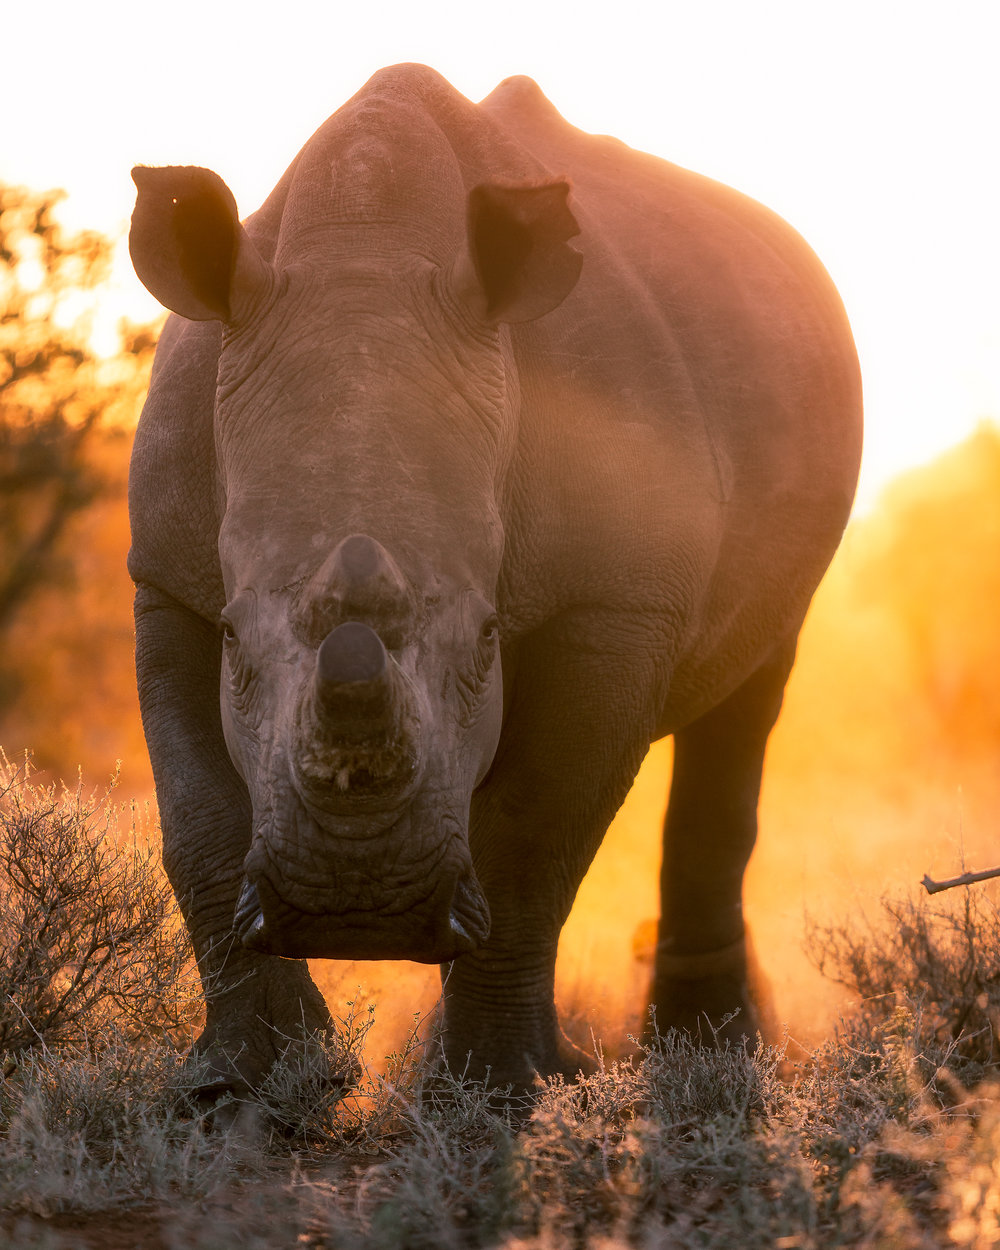 White Rhino by Mike O'Leary - Greengraf Photography-23.jpg